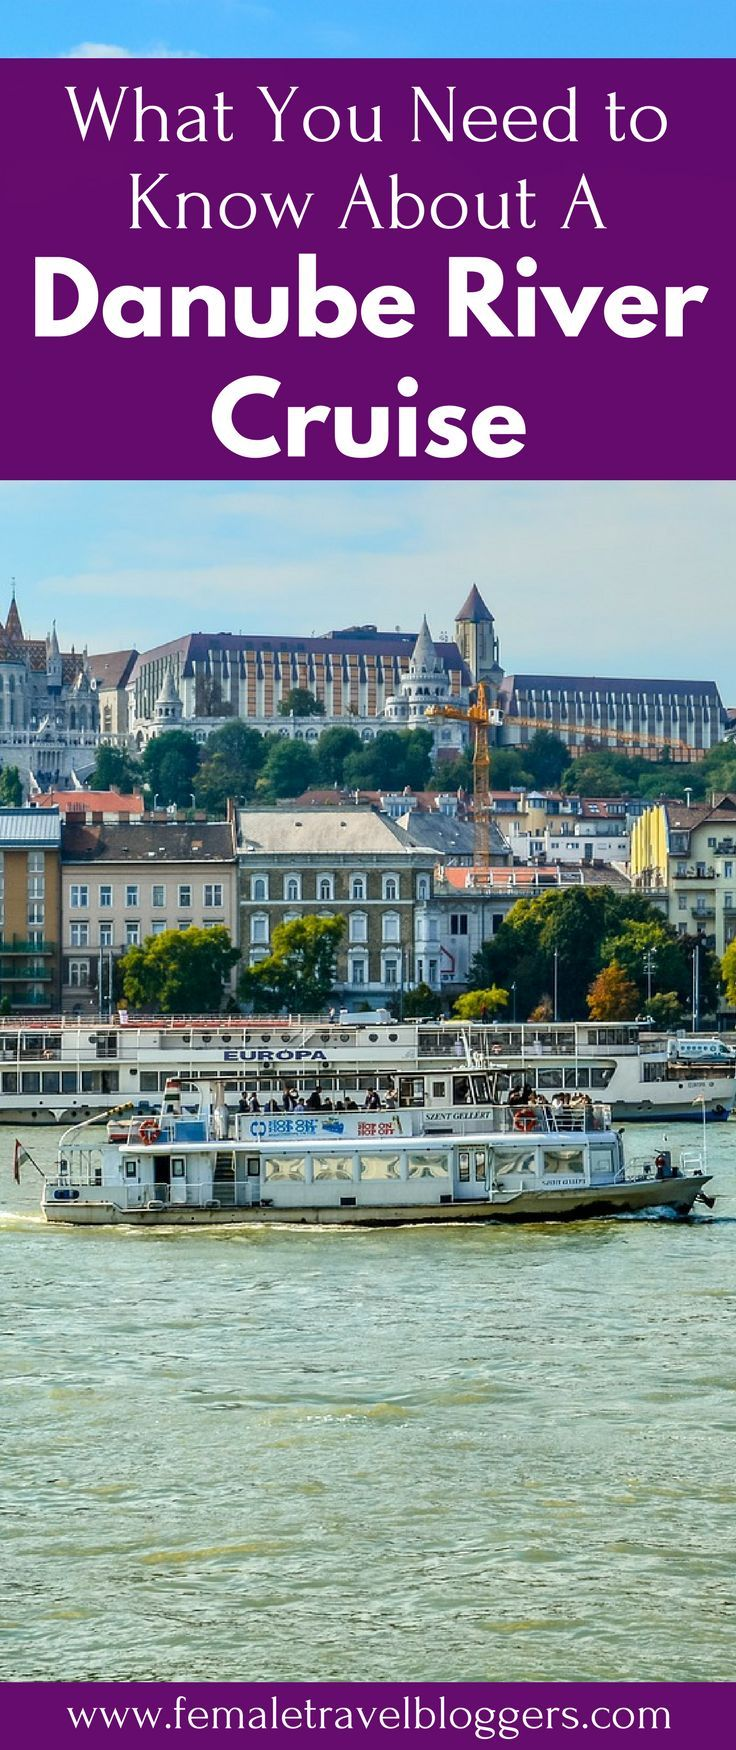 Are you looking for a unique way to travel through Europe? We've got you covered. Come check out why we loved this river cruise on the Danube River in Europe. Don't forget to save this epic cruise to your travel board so you can wake up in a new European city every day too! #rivercruise #danuberivercruise #europetravel